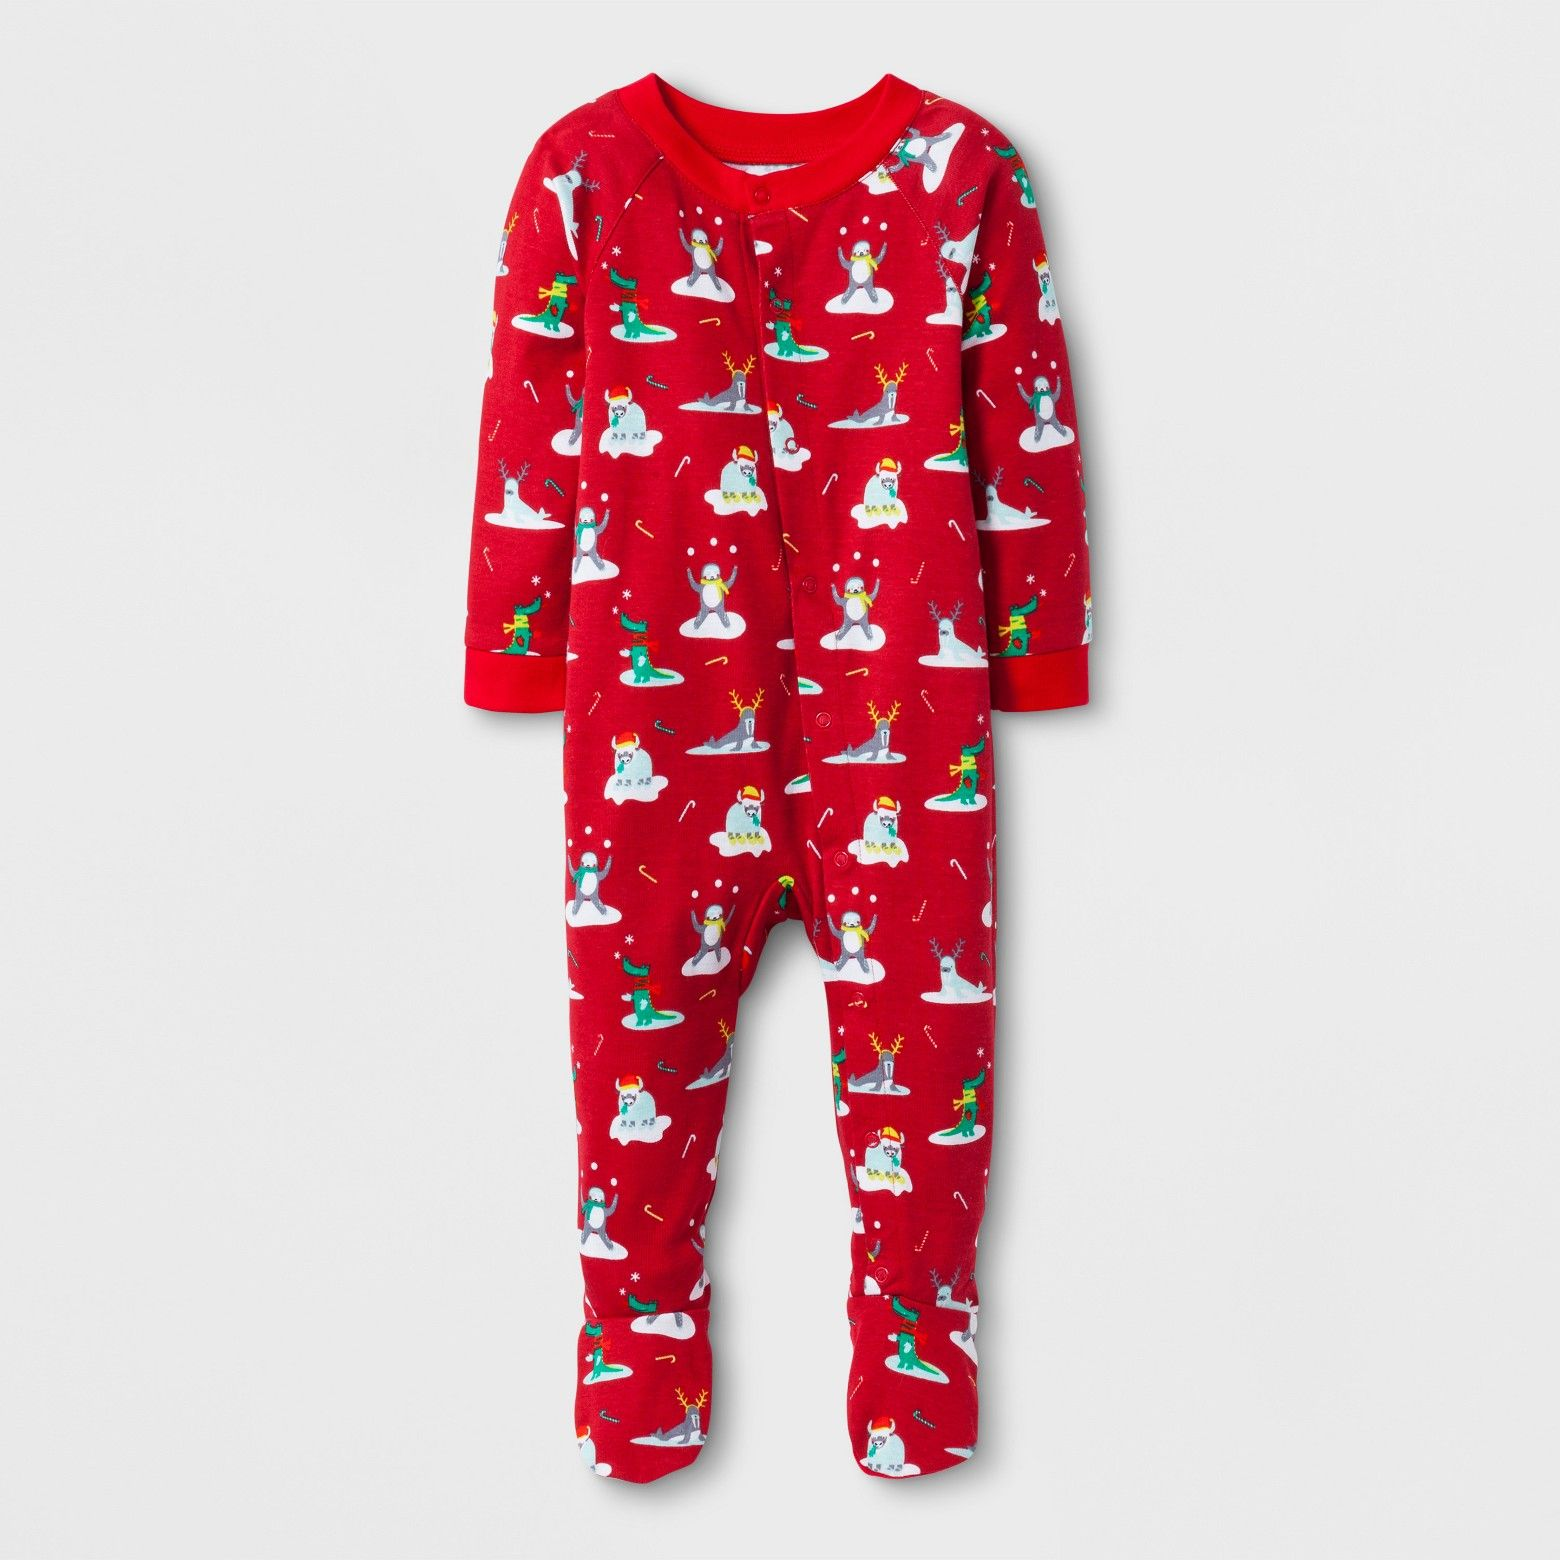 Shop Tar for Christmas baby clothing you will love at great low